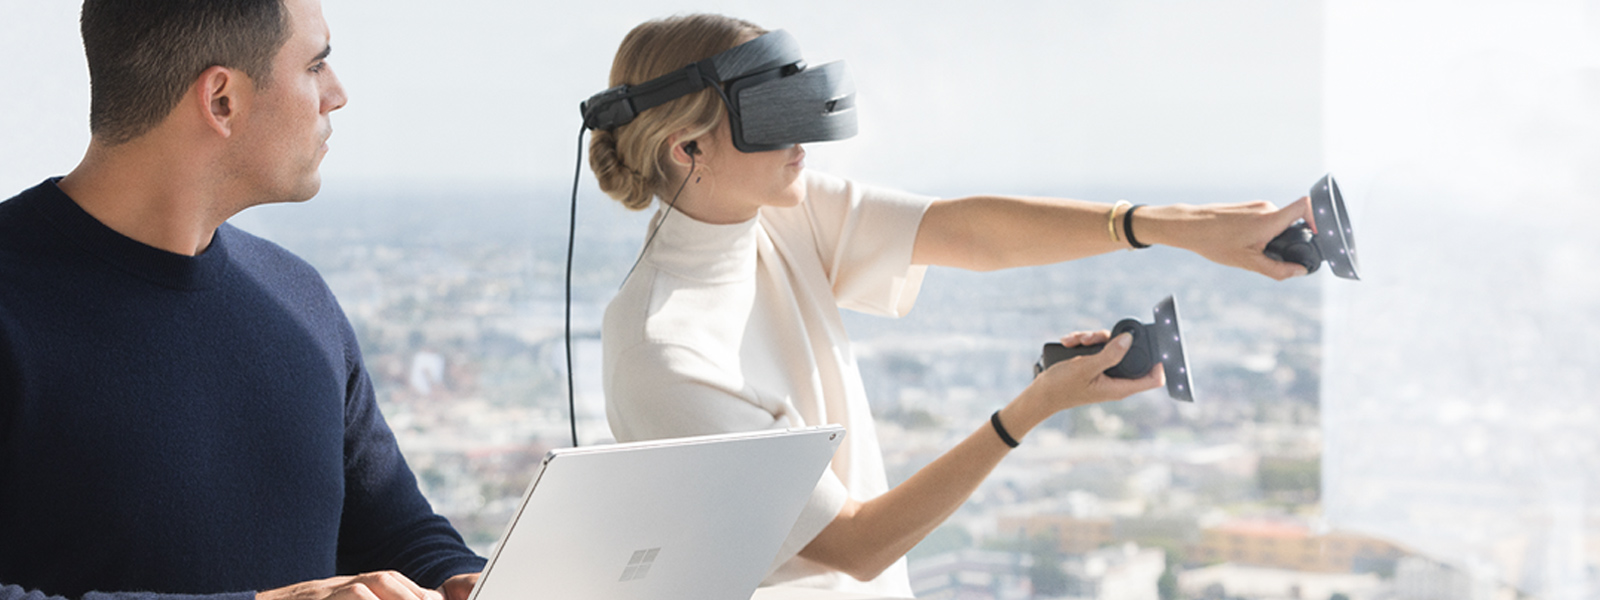 A man using a Surface Book 2 watching a woman  beside him using a Windows Mixed Reality headset and motion controllers that is paired with his Surface Book 2